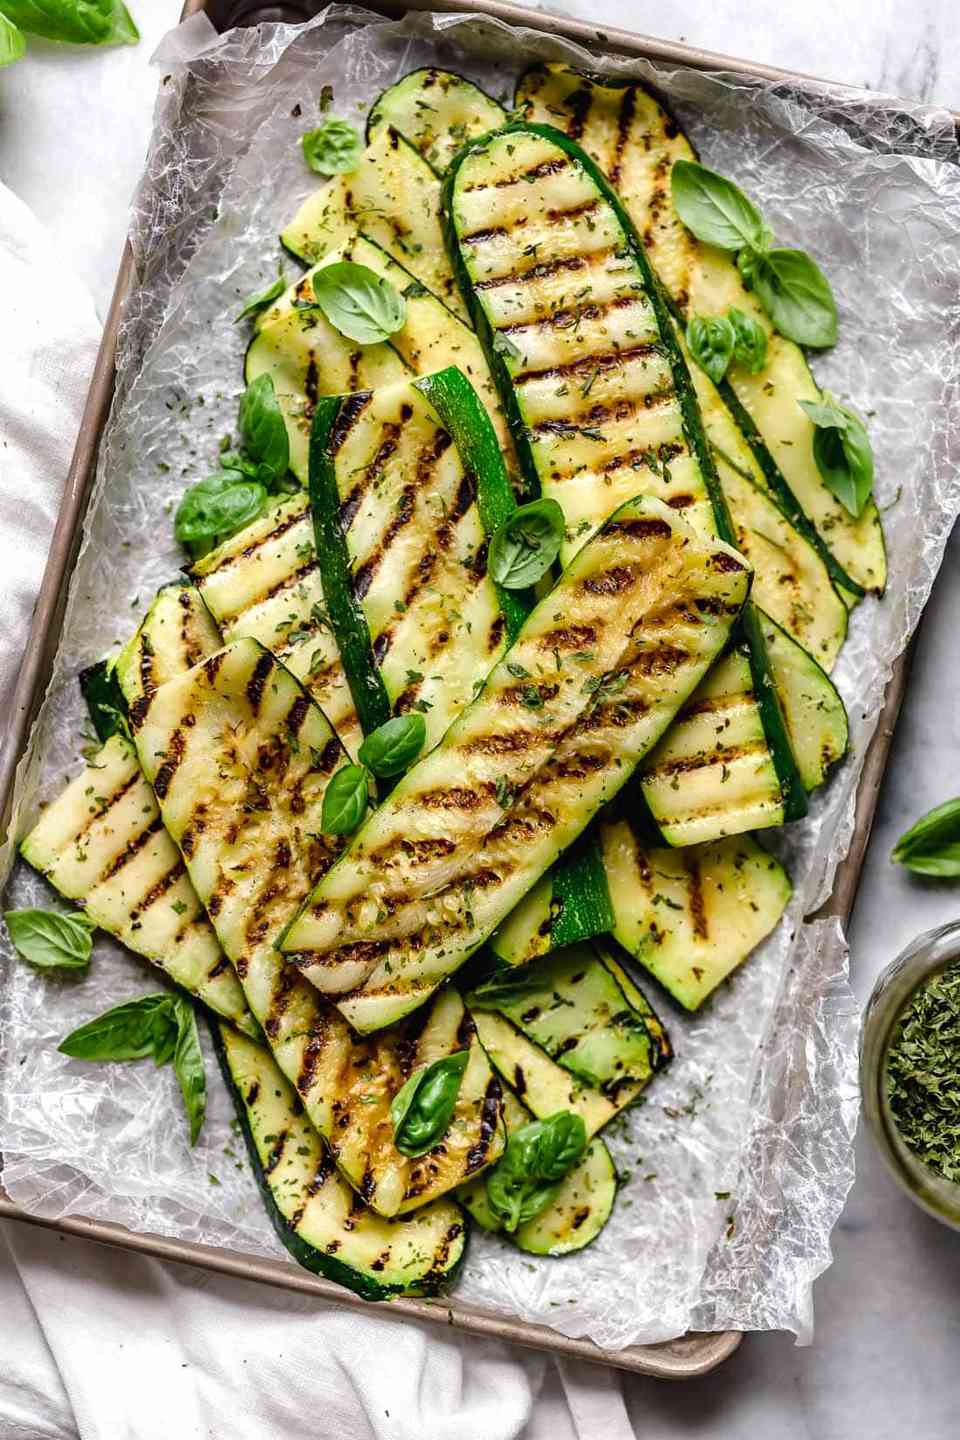 Grilled Squash Ribbons